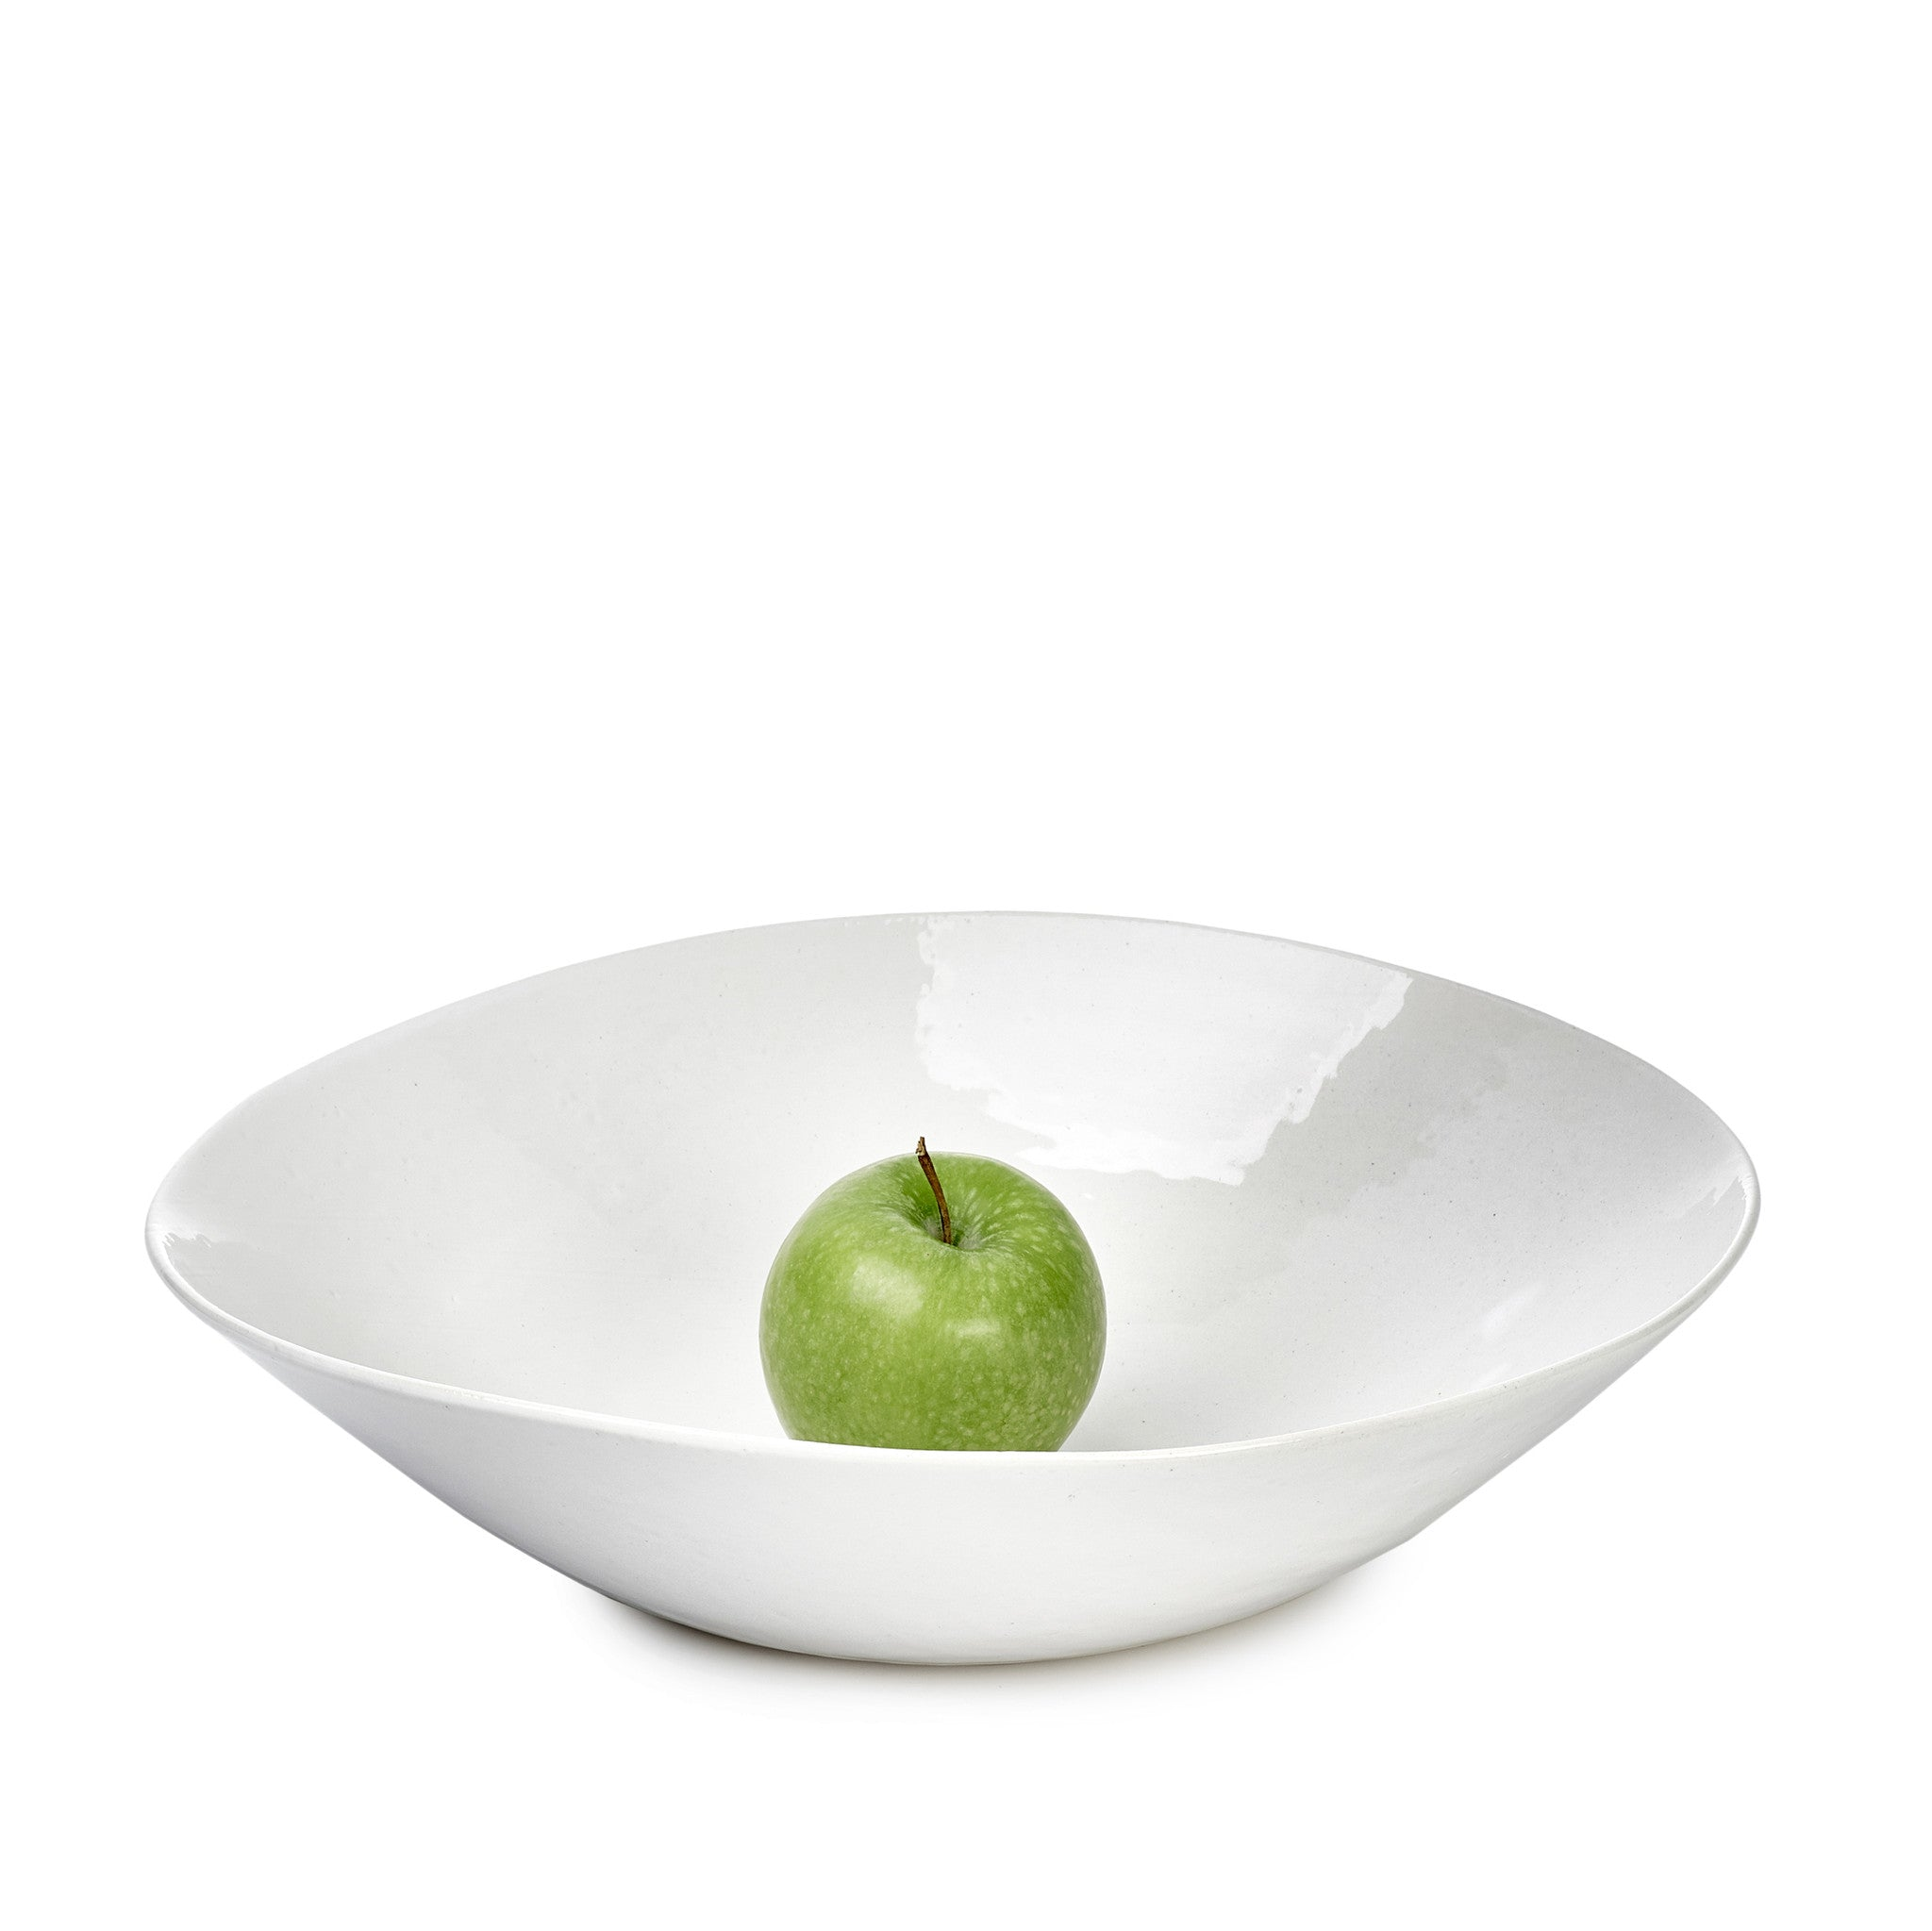 Wonki Ware Salad Bowl in White, 37cm